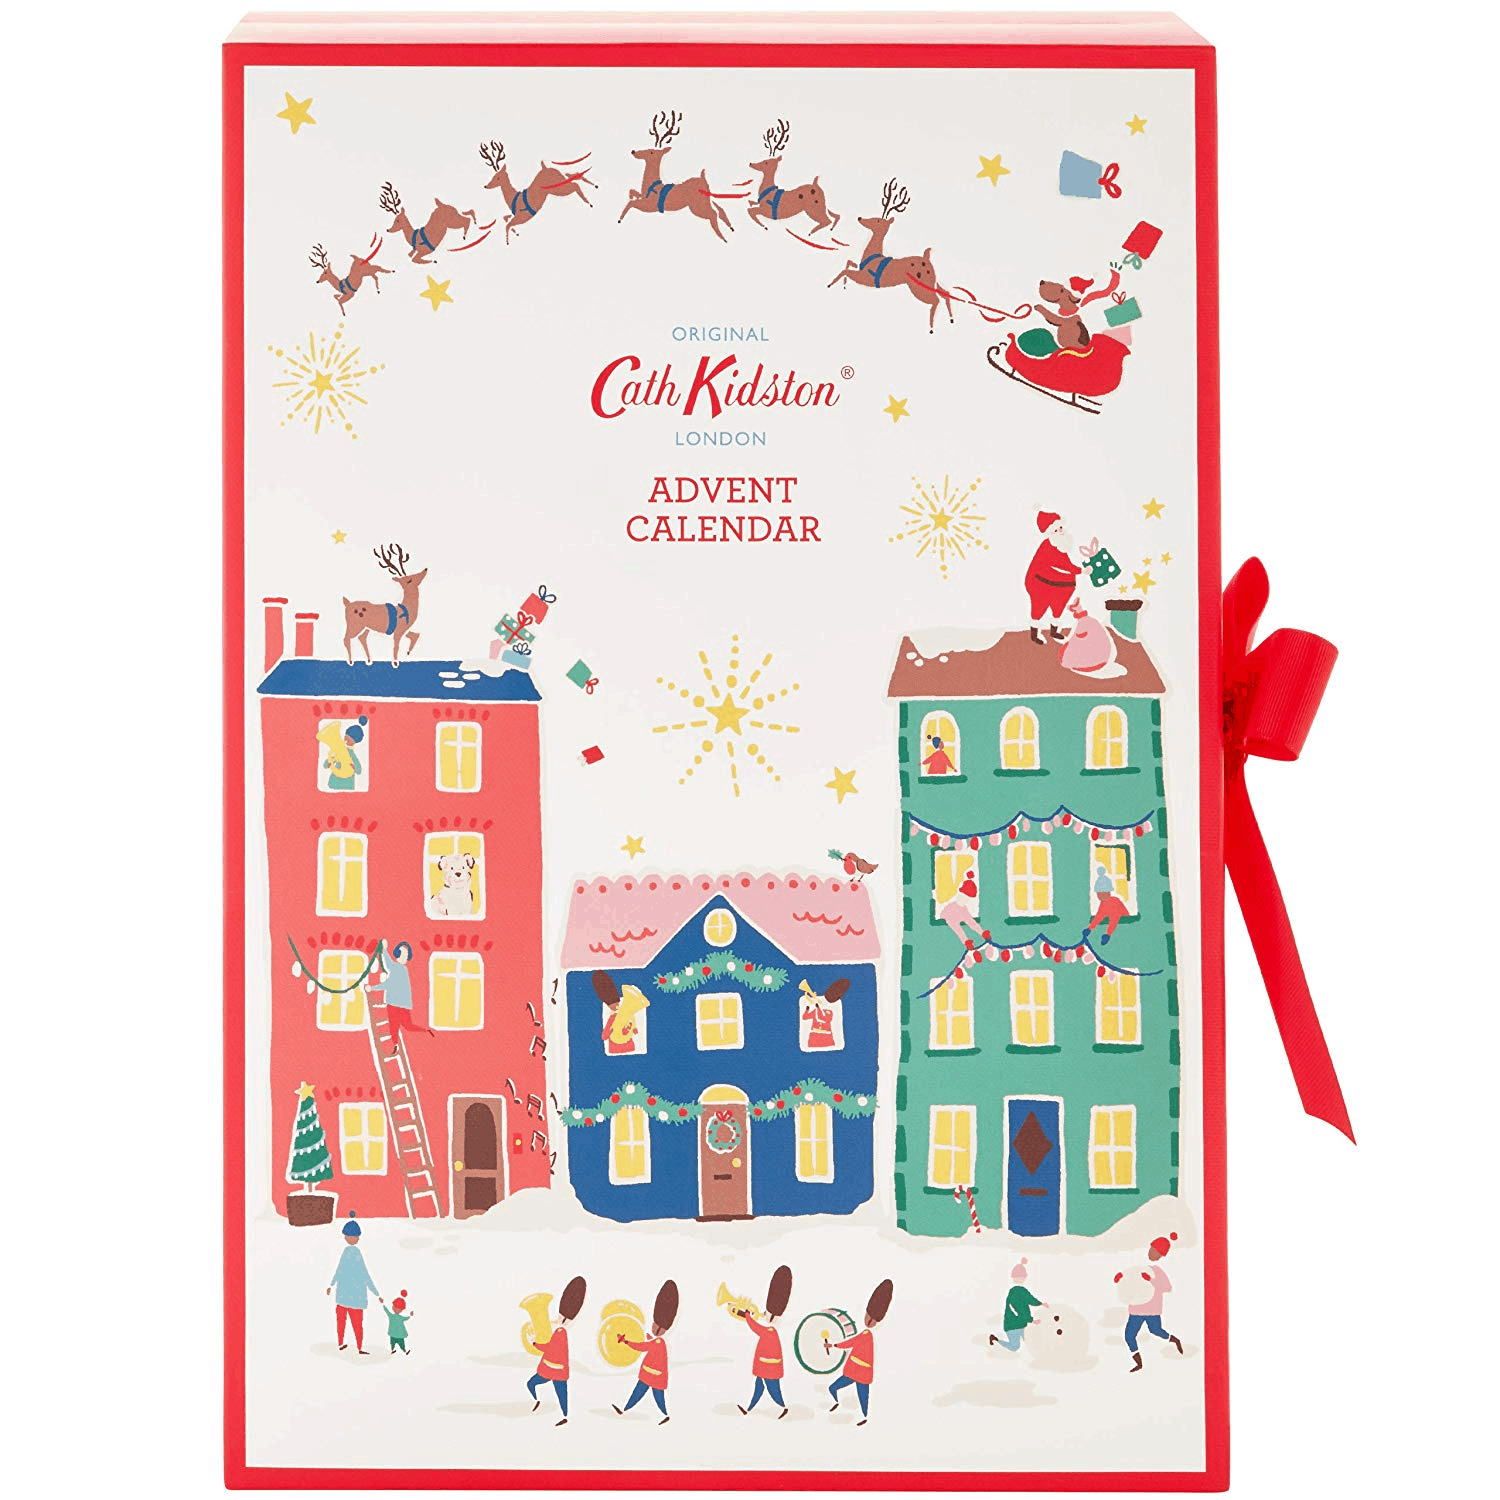 Cath Kidston Advent Calendar 2019 Available Now + Full Spoilers!